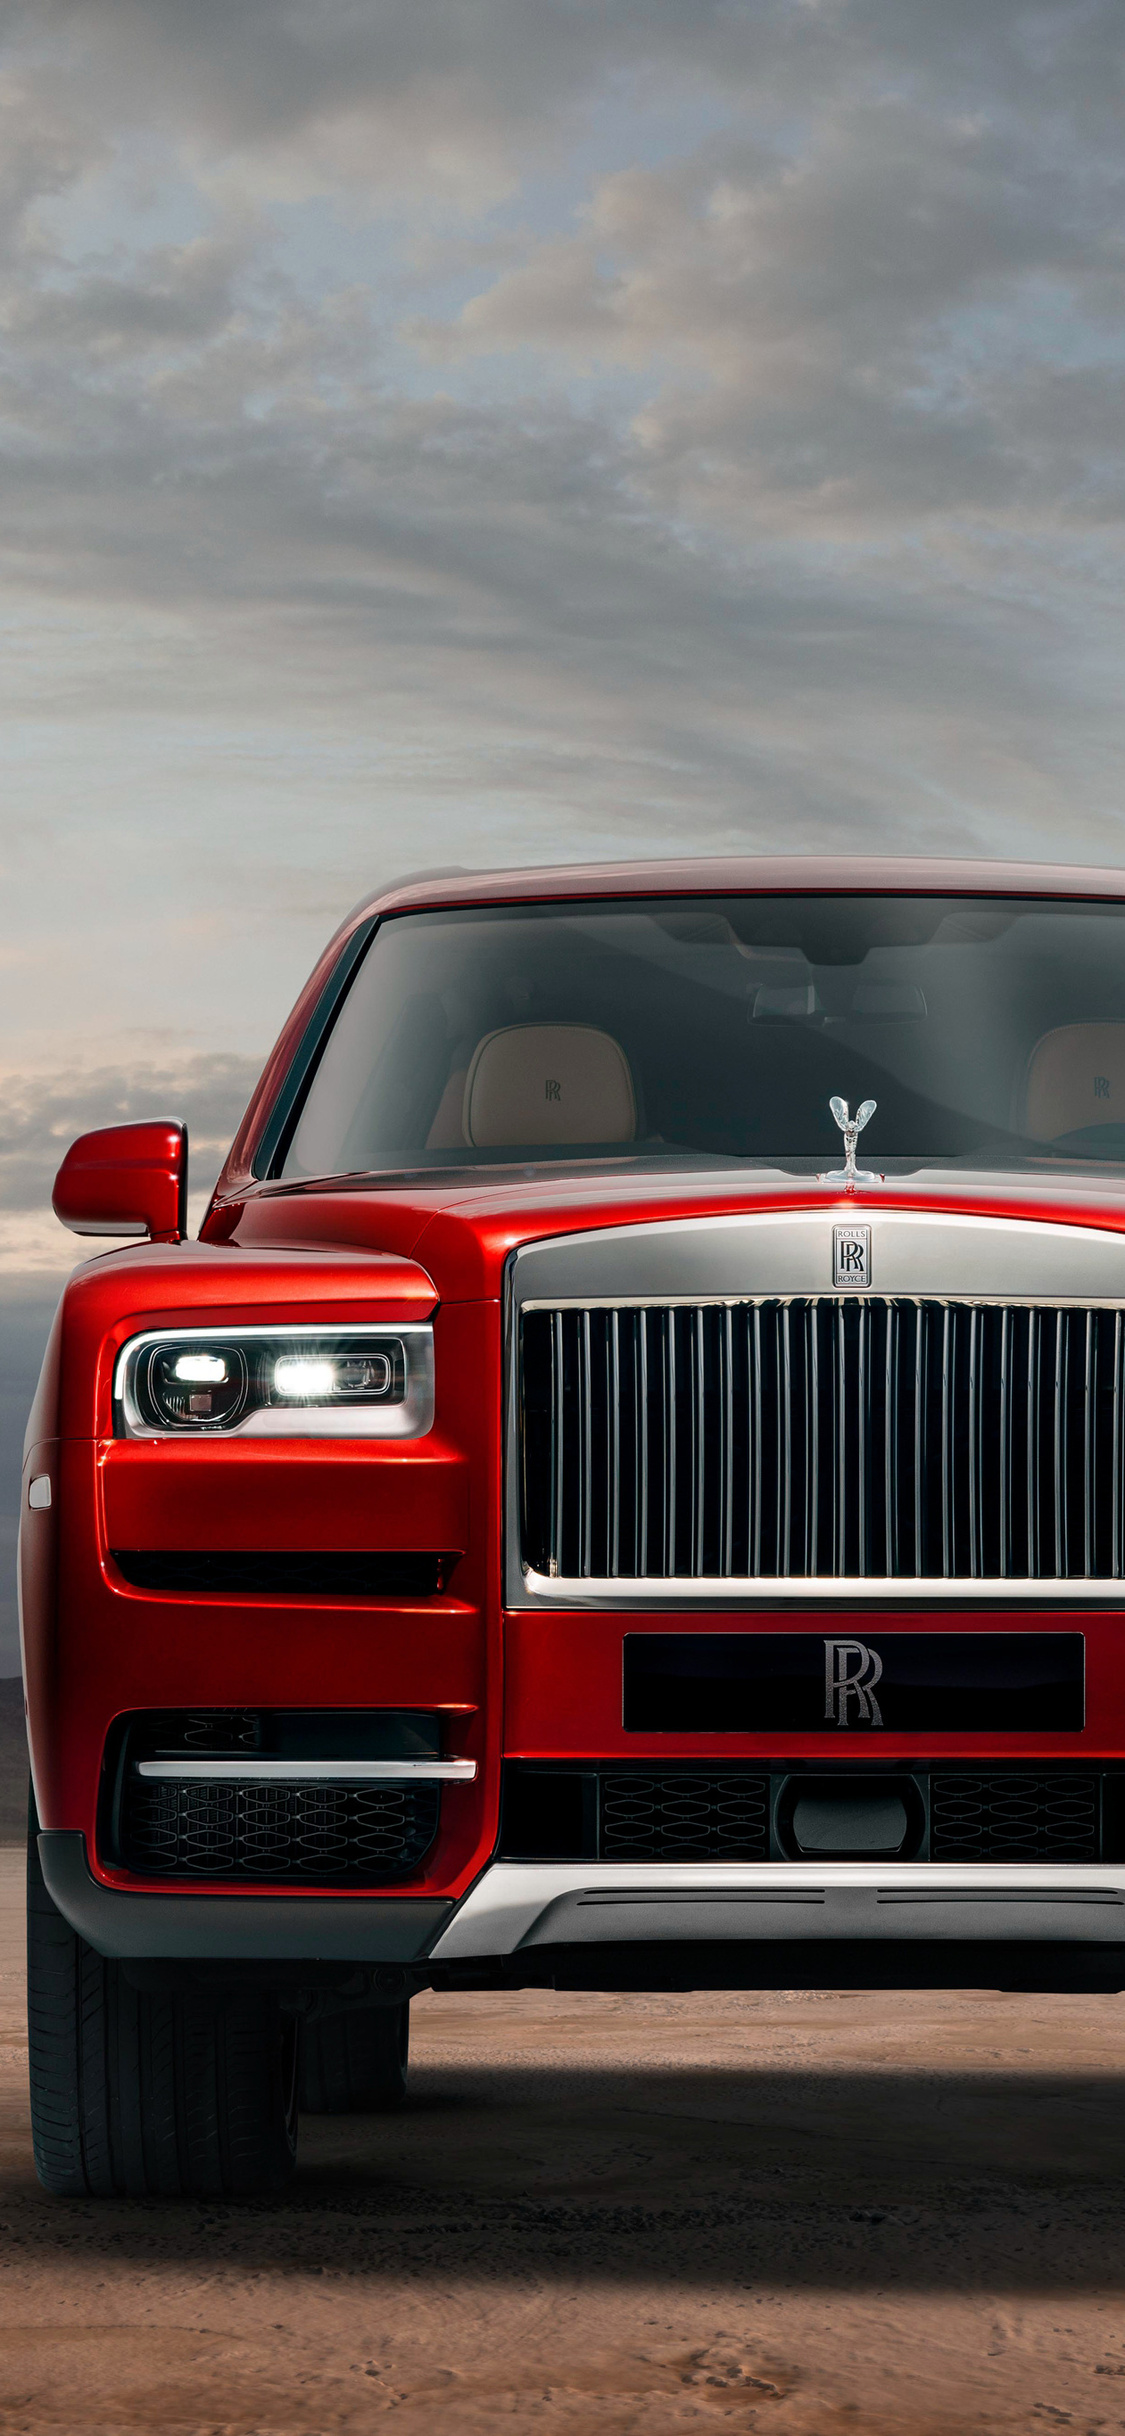 1125x2436 2019 Rolls Royce Suv Cullinan Iphone Xs Iphone 10 Iphone X Hd 4k Wallpapers Images Backgrounds Photos And Pictures